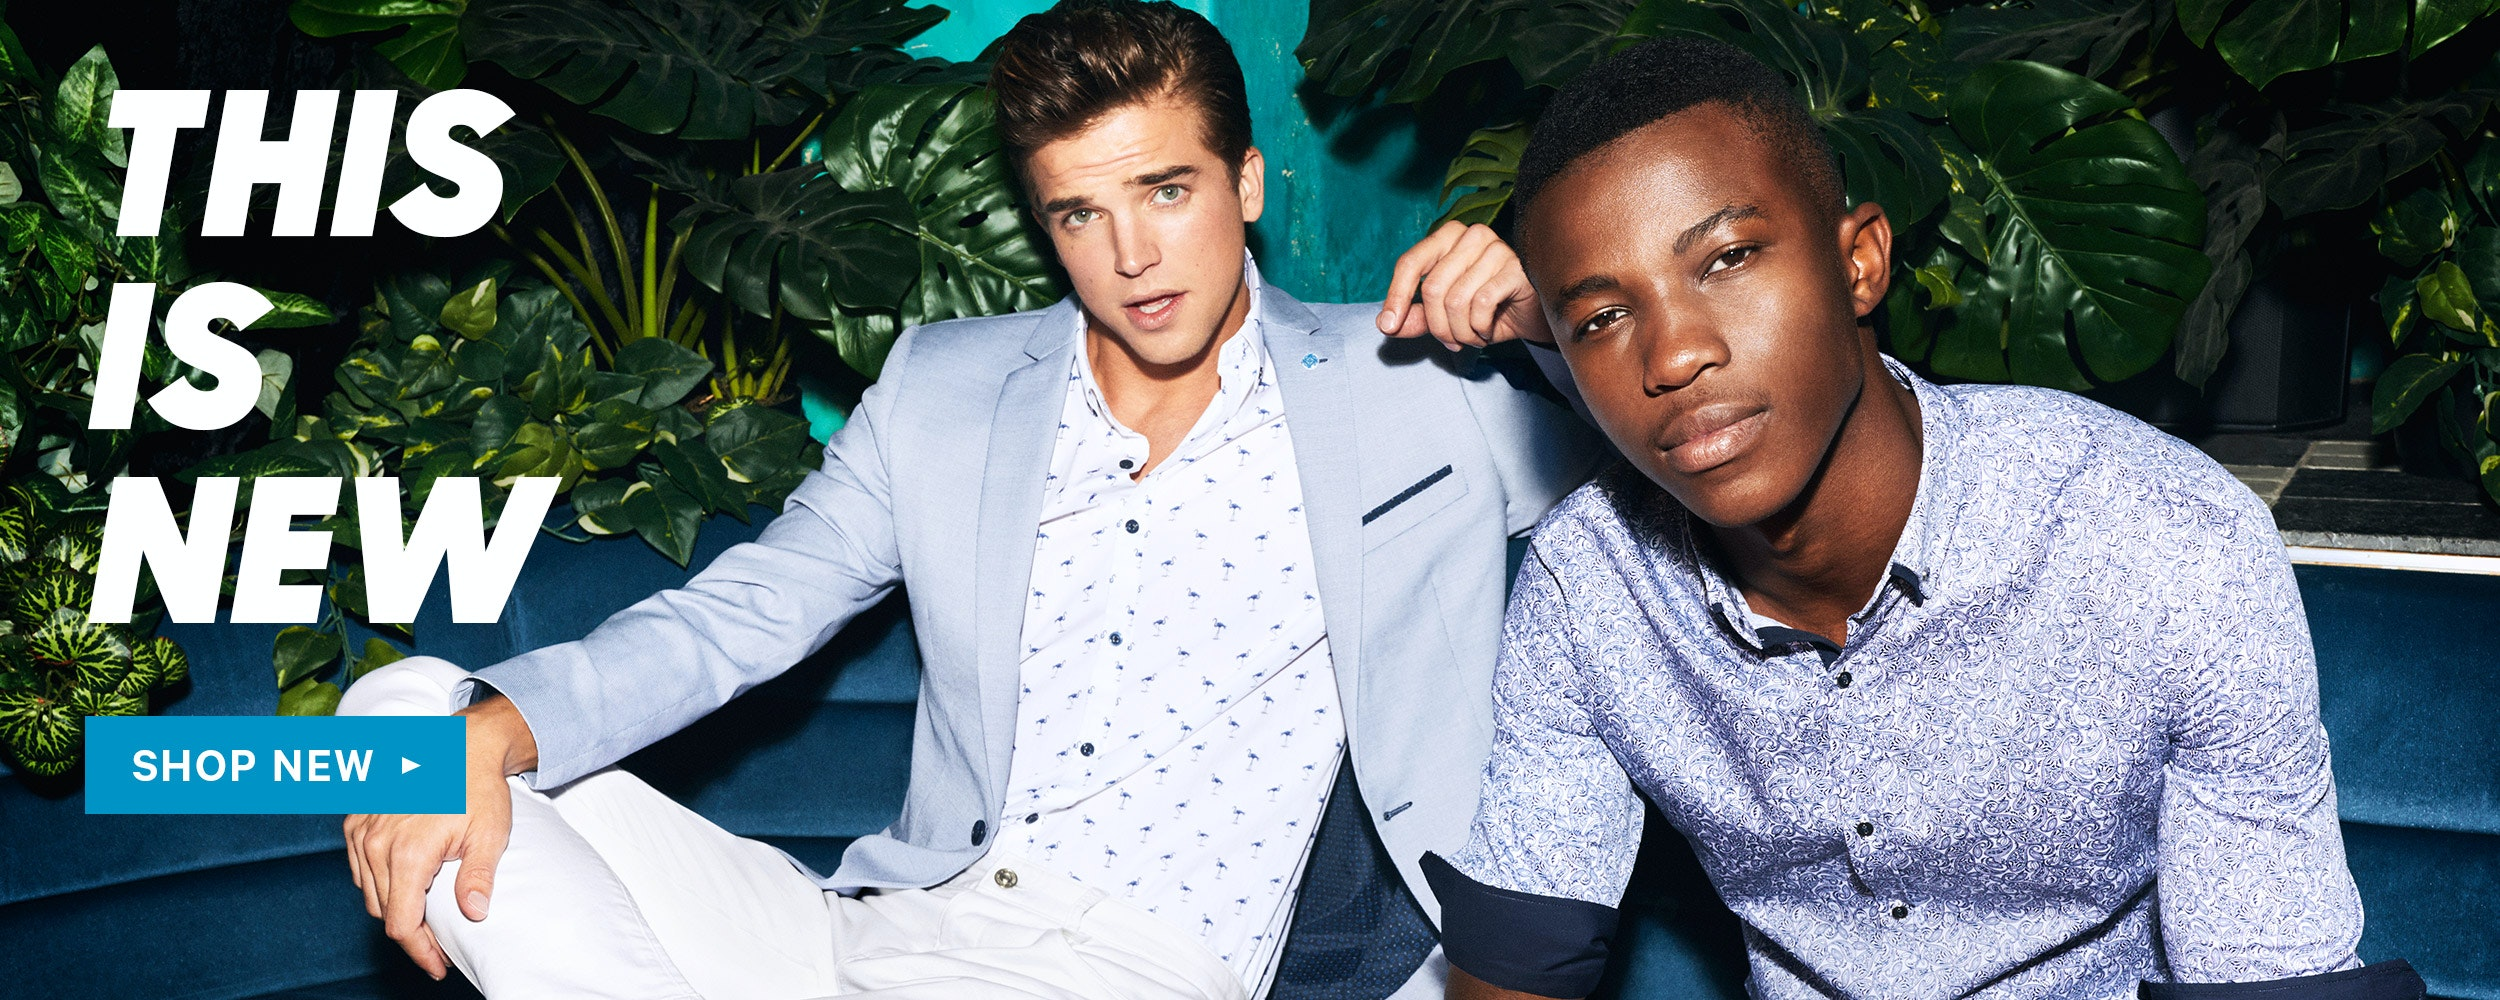 New Arrivals: check out the latest Spring men's clothing range from yd.